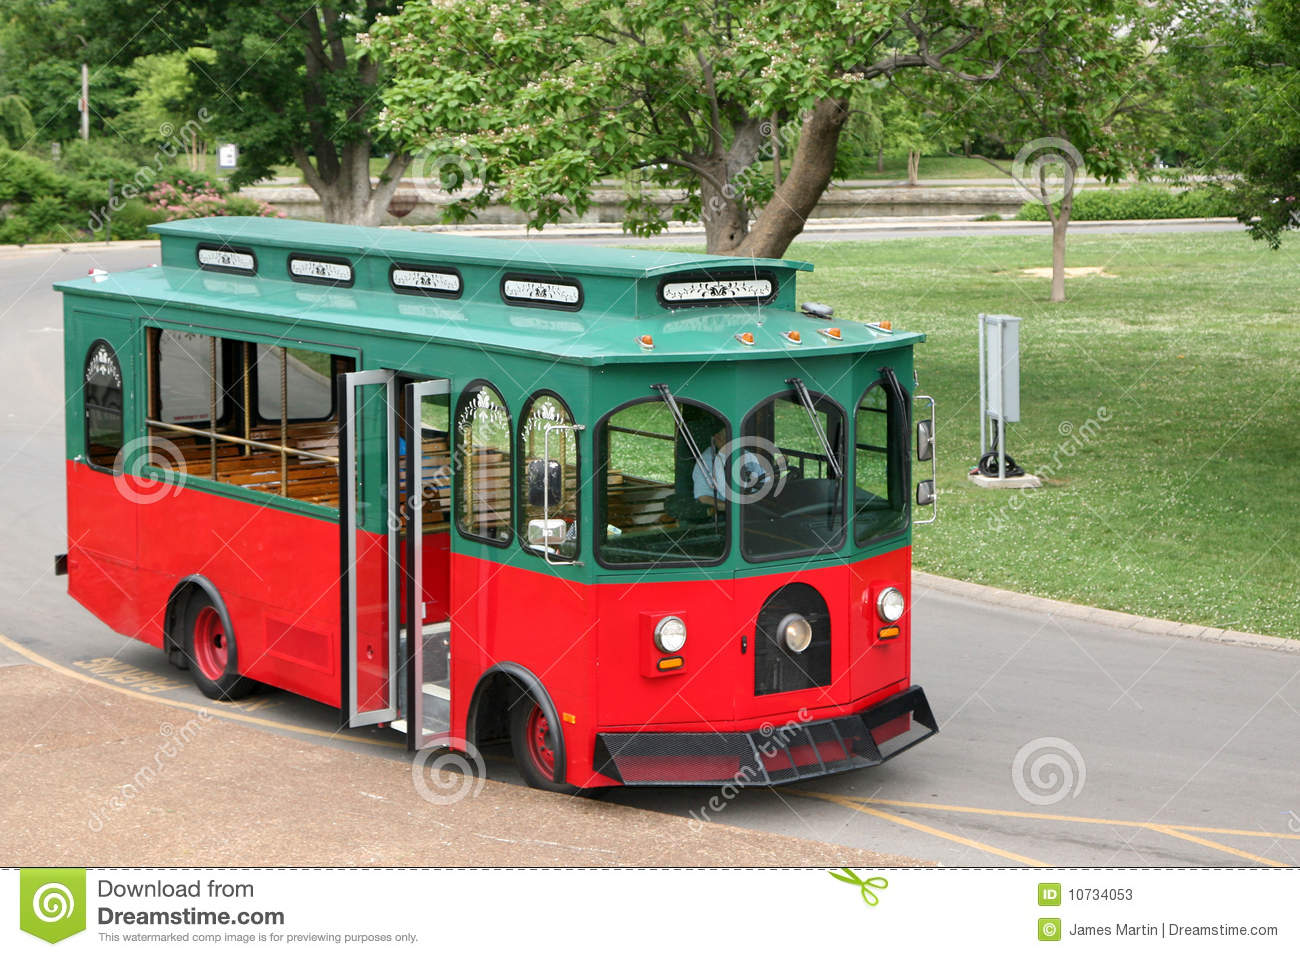 Old Fashioned Cars >> Old Fashioned Trolley In A Park Setting Stock Photos ...